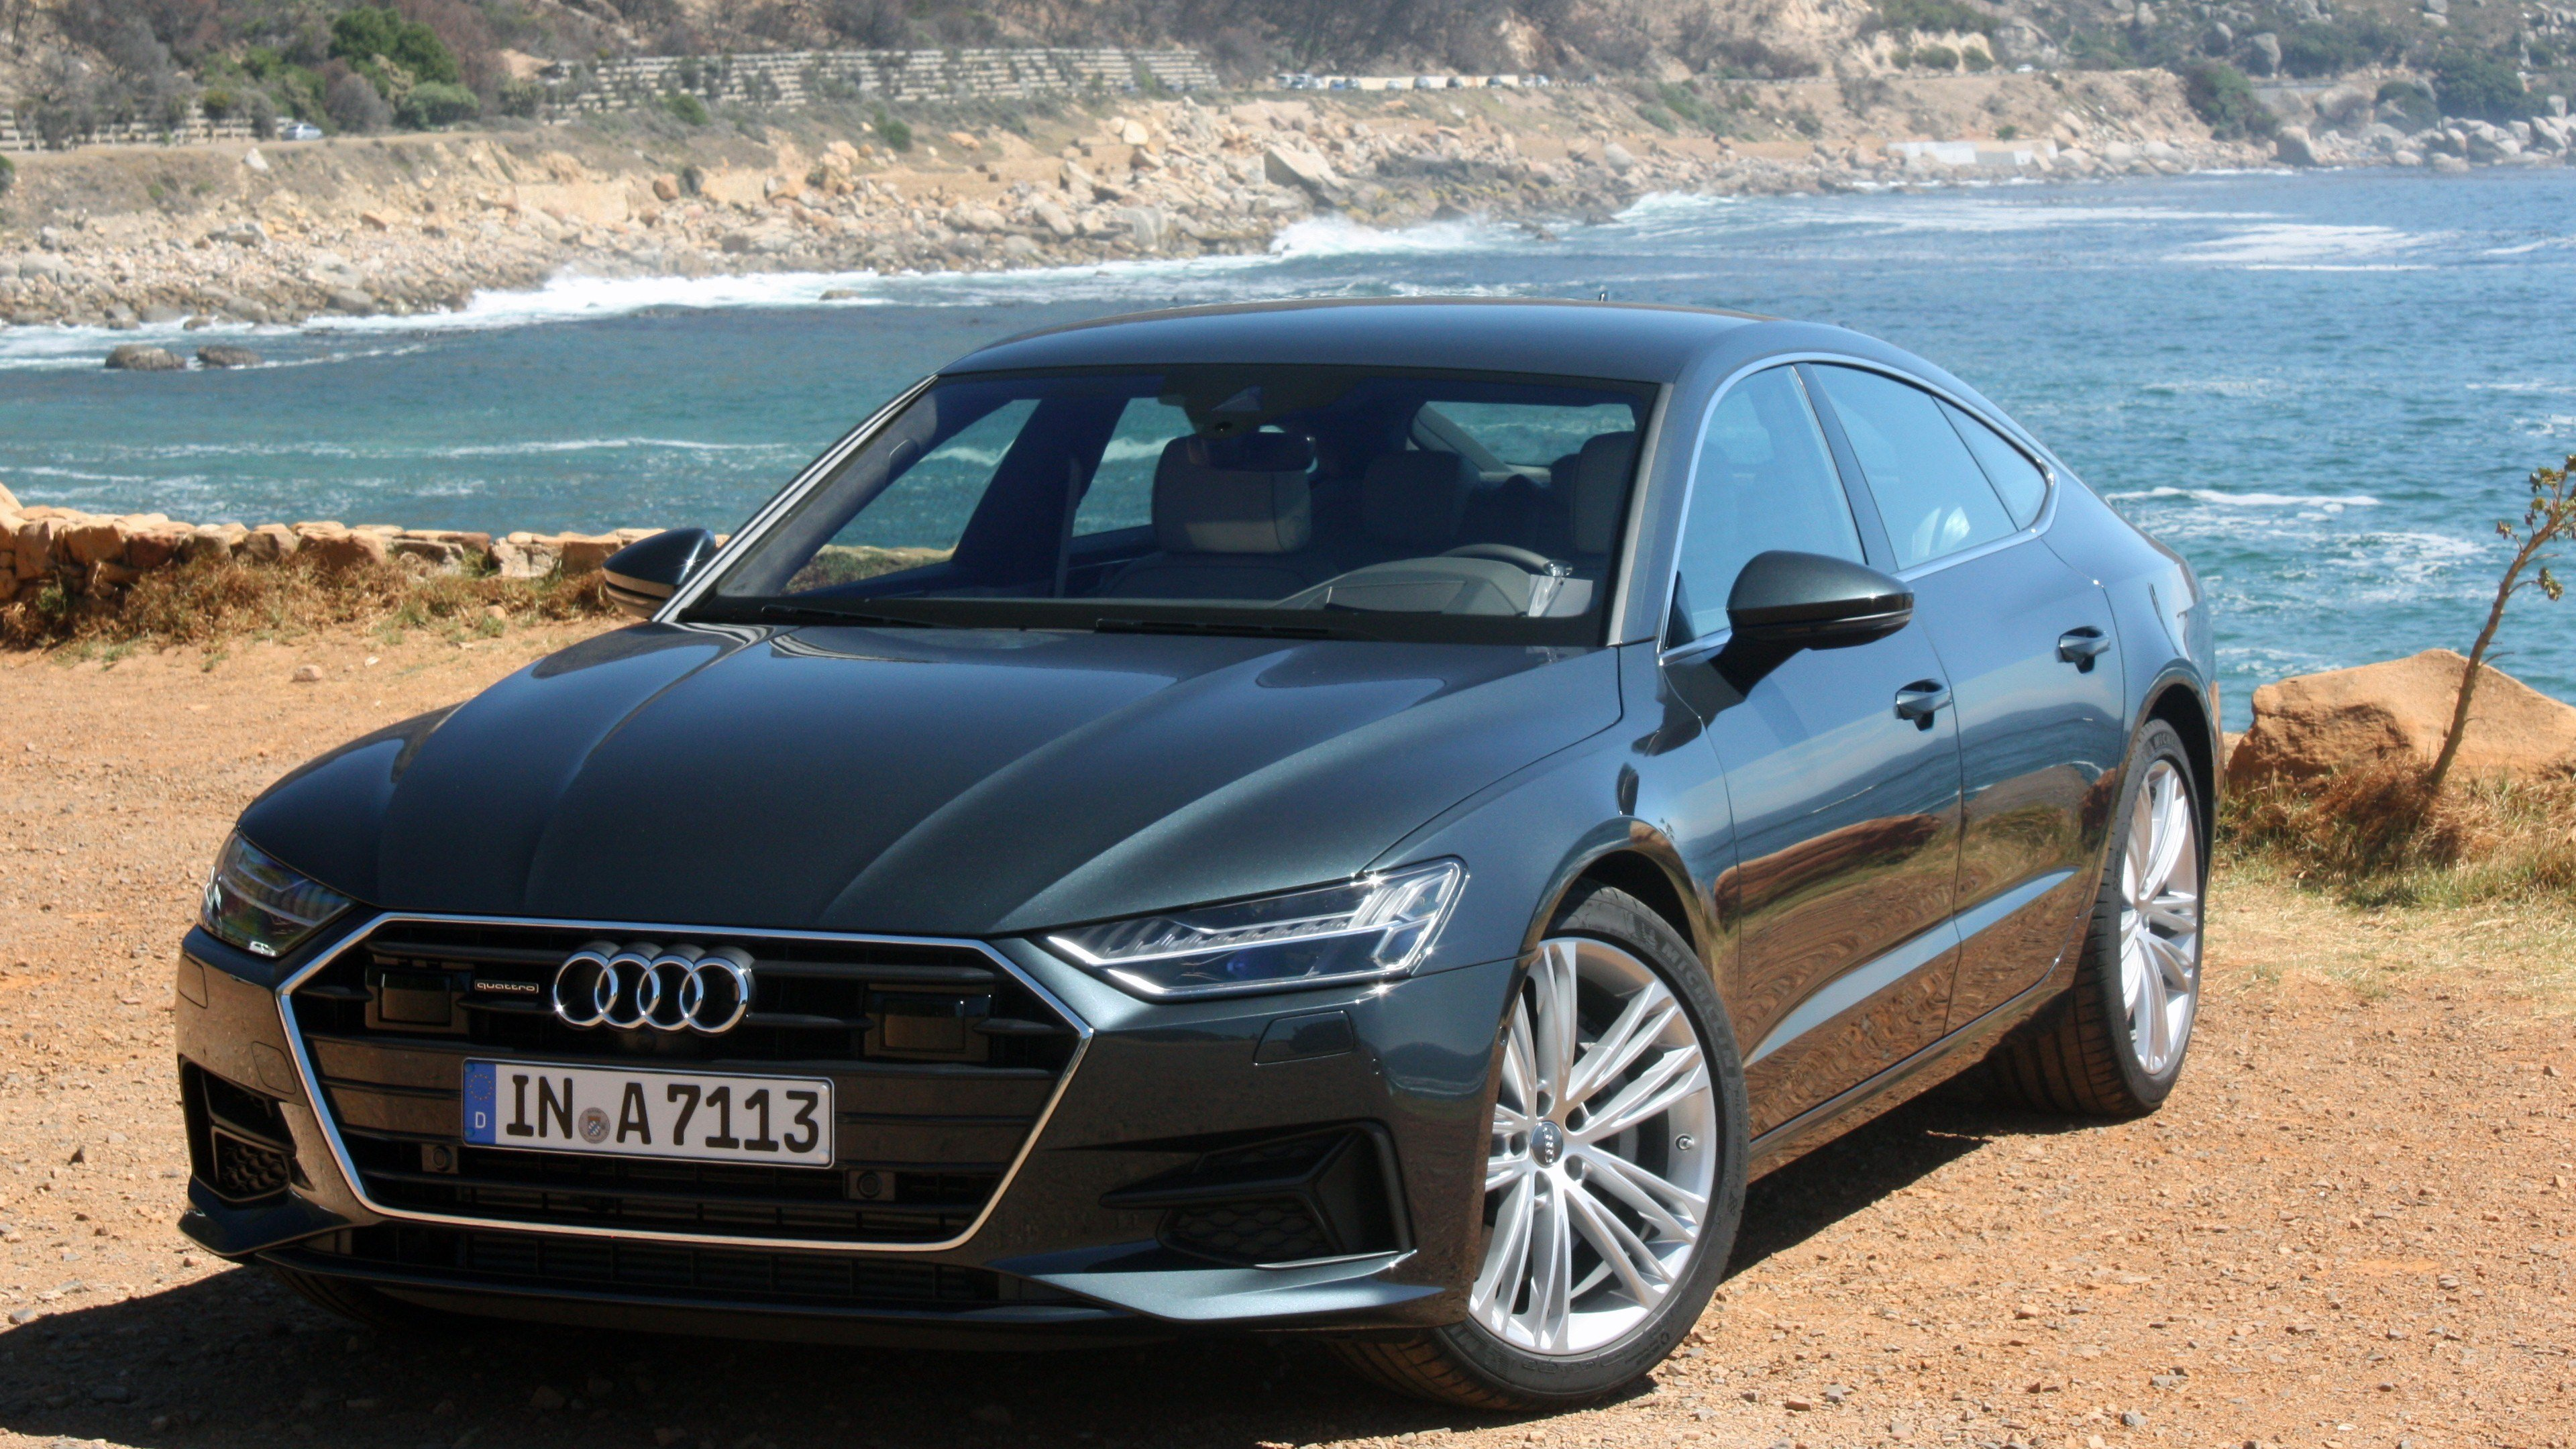 Latest 4K Wallpaper Of Audi A7 Car Hd Wallpapers Free Download